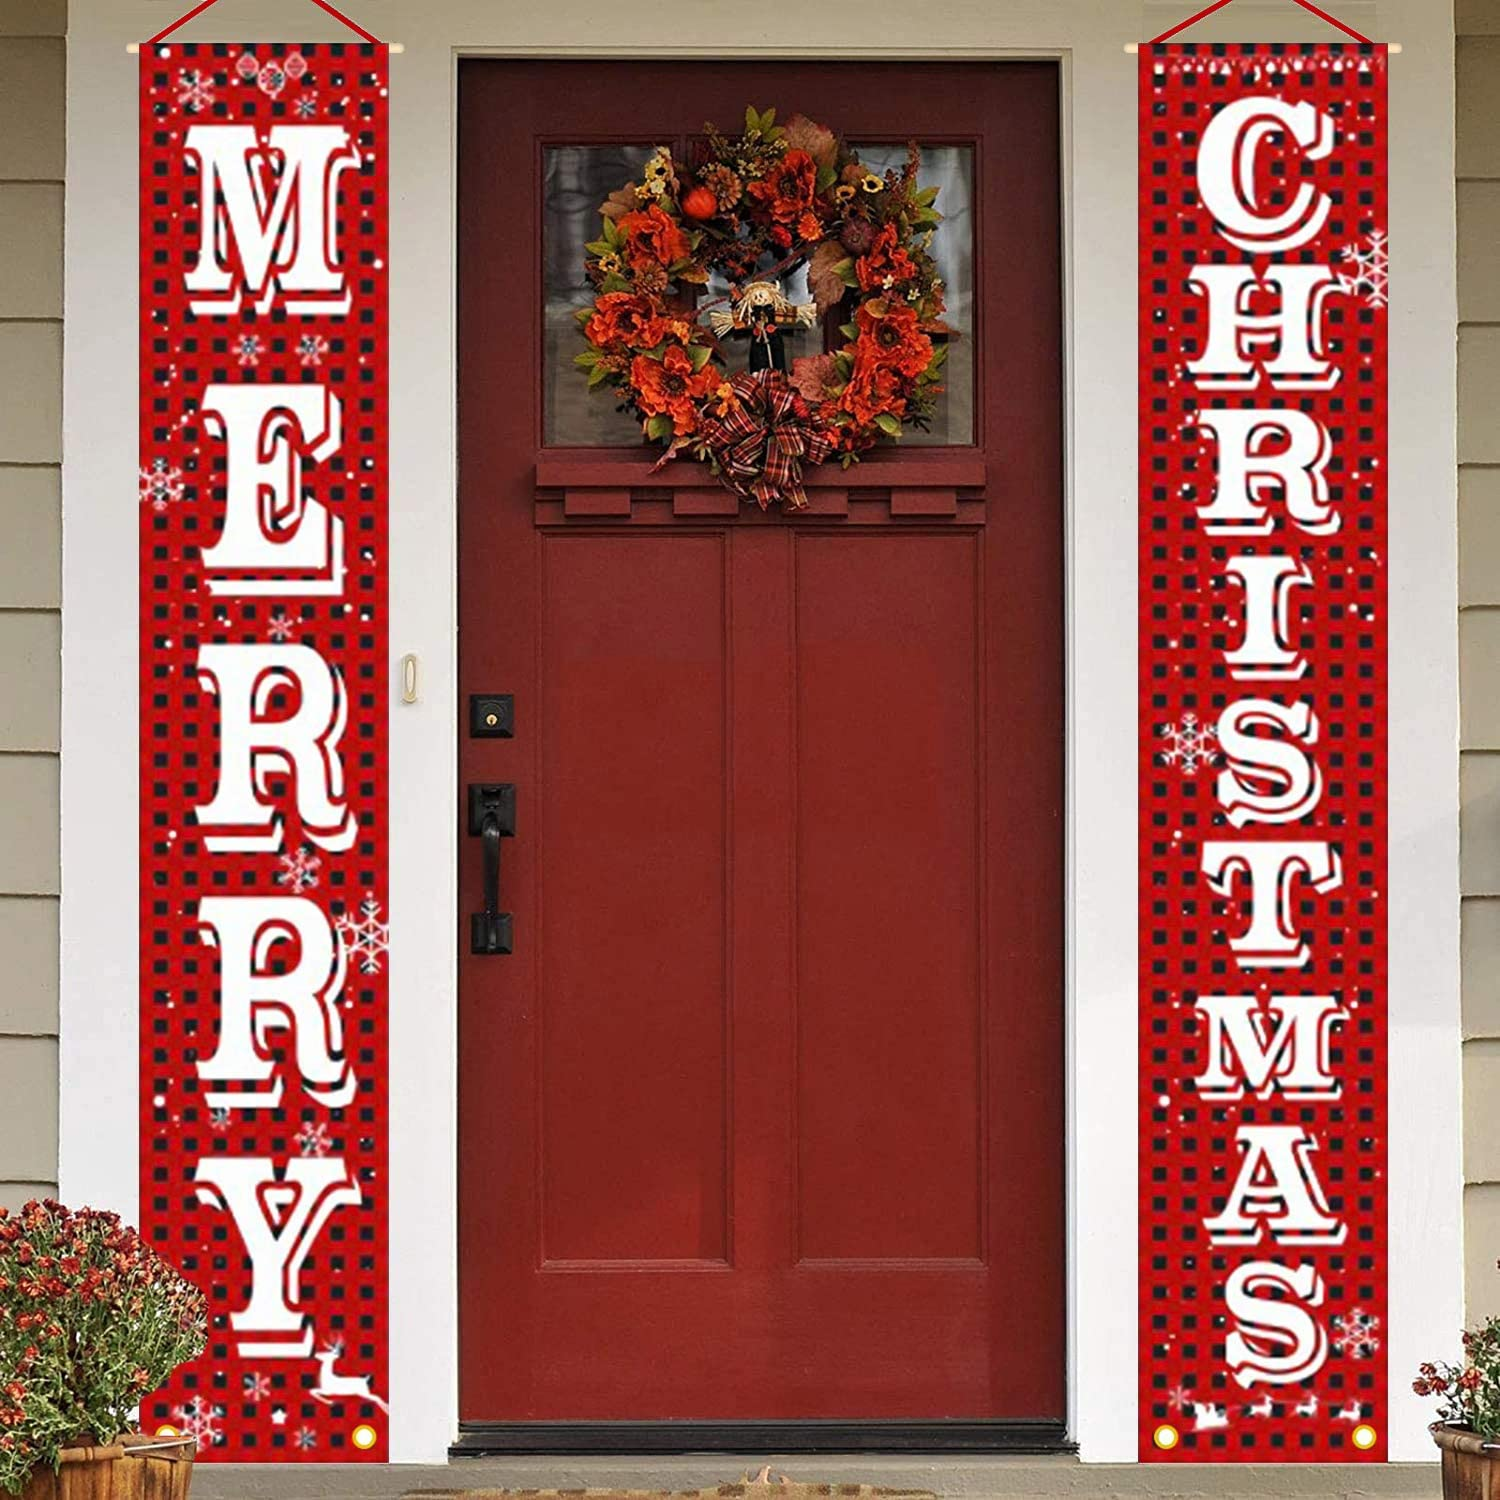 Evoio Merry Christmas Banner, Xmas Decorations Porch Sign, Red Black Buffalo Check Decorations Outdoor Indoor Xmas Decor for Home Wall Front Door Apartment Party Hanging 12 x 72 Inch